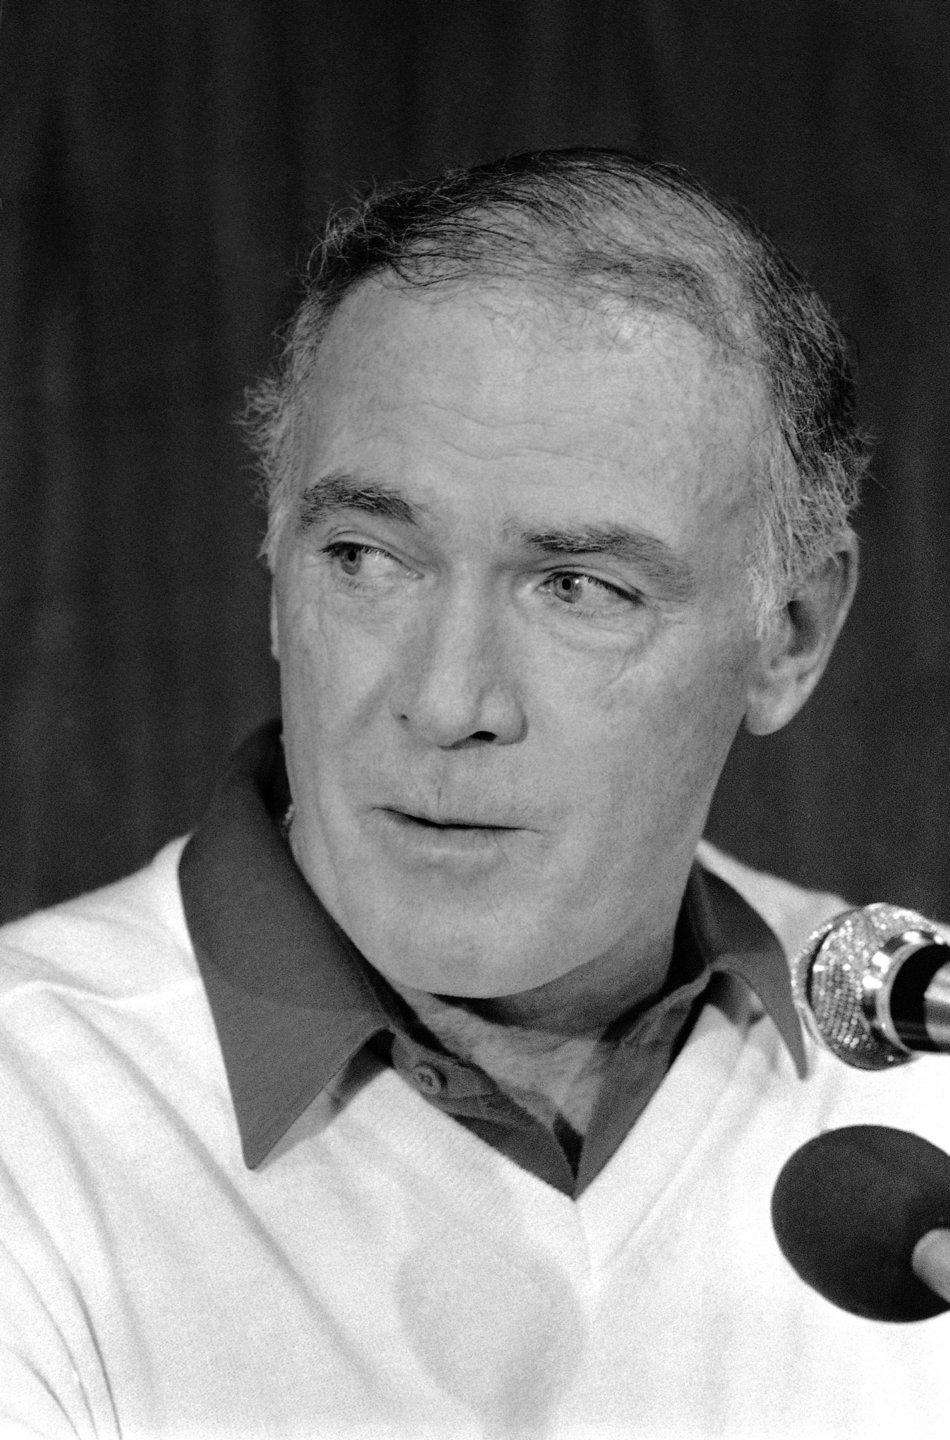 Chuck Knox, the former NFL coach who took